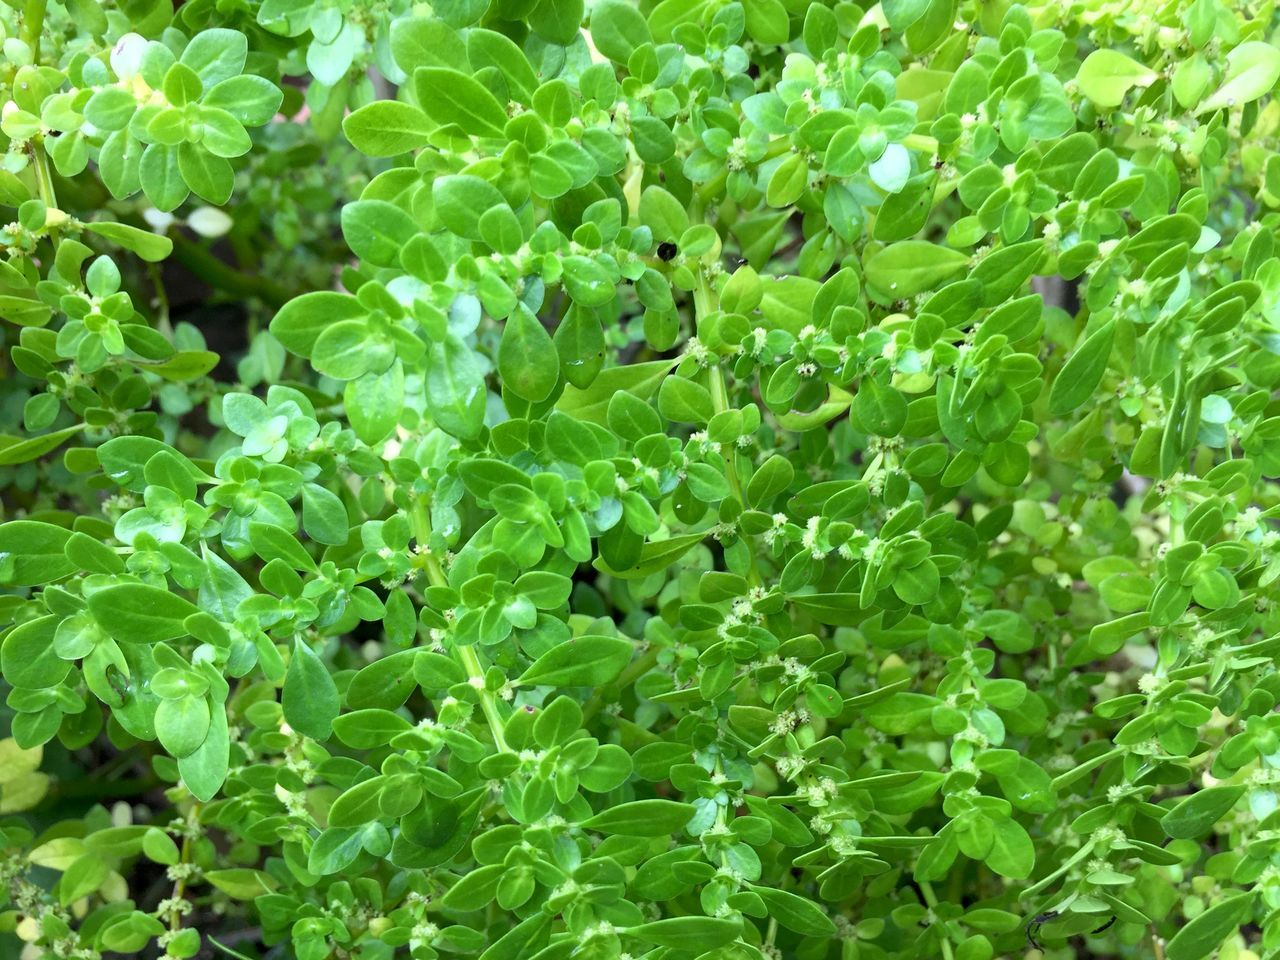 This foliage is call dólar in Brazil, to atract money! Backgrounds Beauty In Nature Close-up Day Dolar Foliage Foliage, Vegetation, Plants, Green, Leaves, Leafage, Undergrowth, Underbrush, Plant Life, Flora Freshness Green Color Growth Leaf Money Nature No People Outdoors Plant